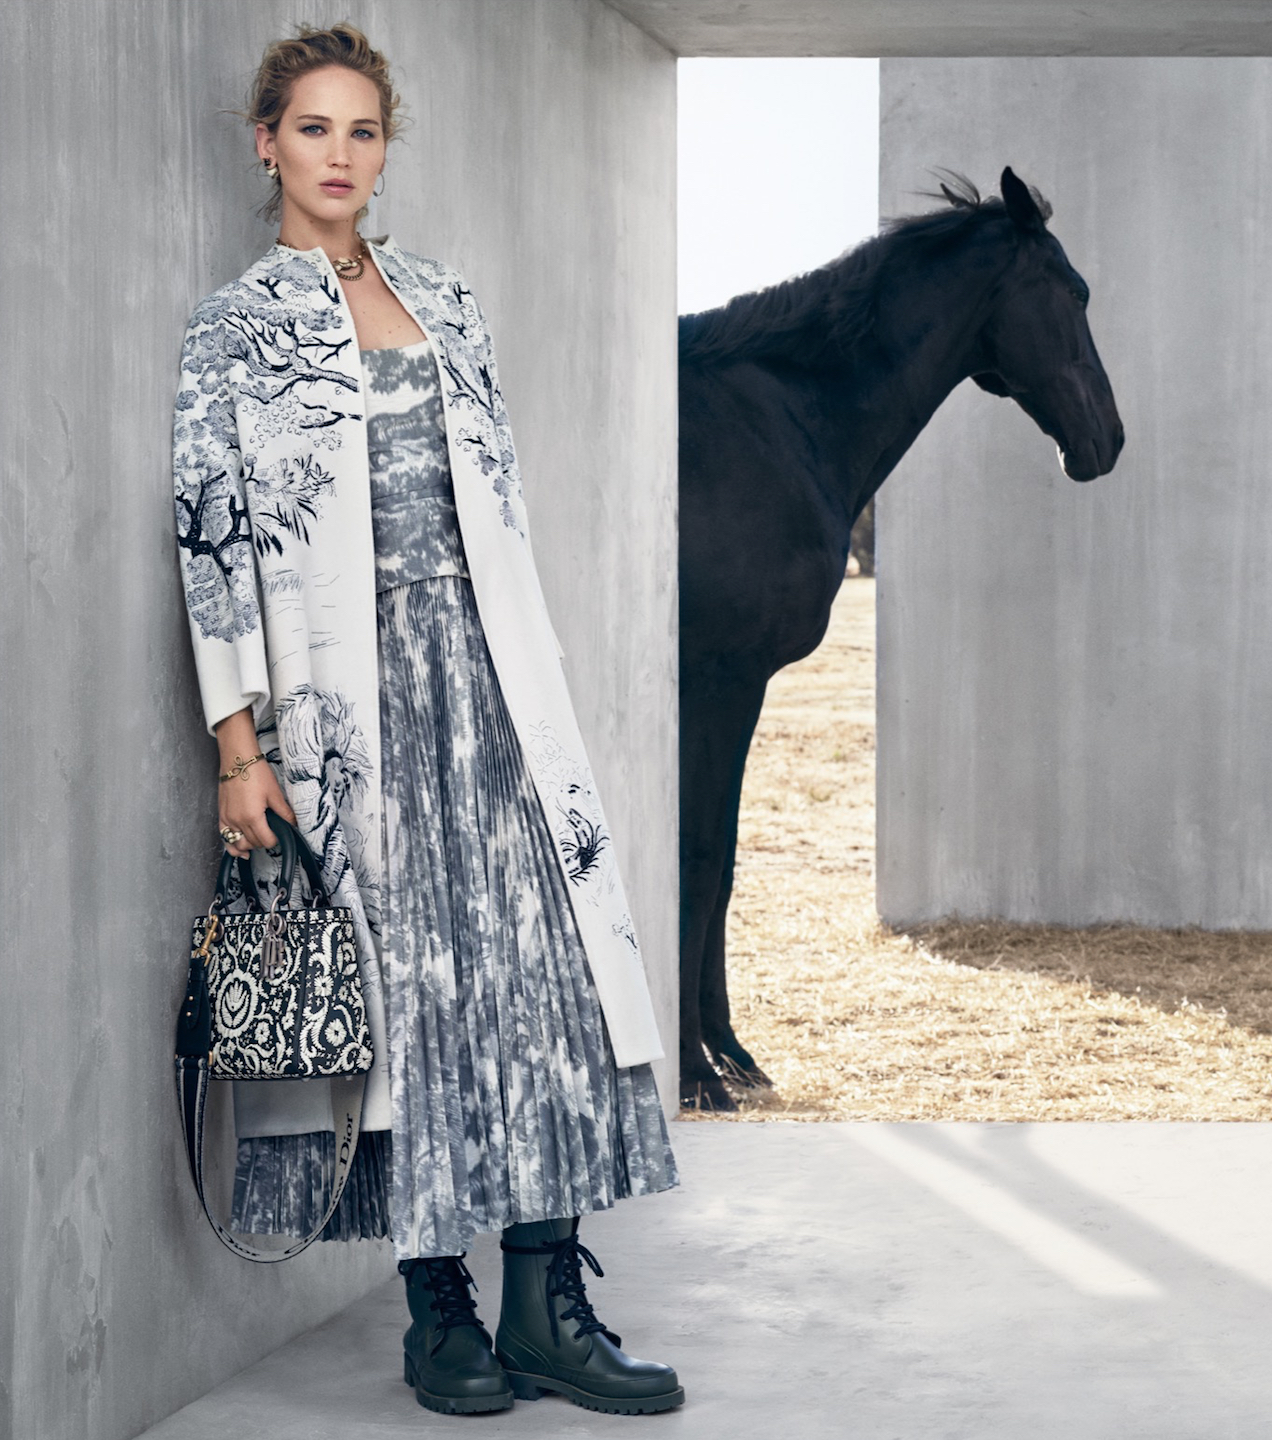 5697a07332 Jennifer Lawrence Stars in the Dior Cruise 2019 Campaign - Savoir Flair